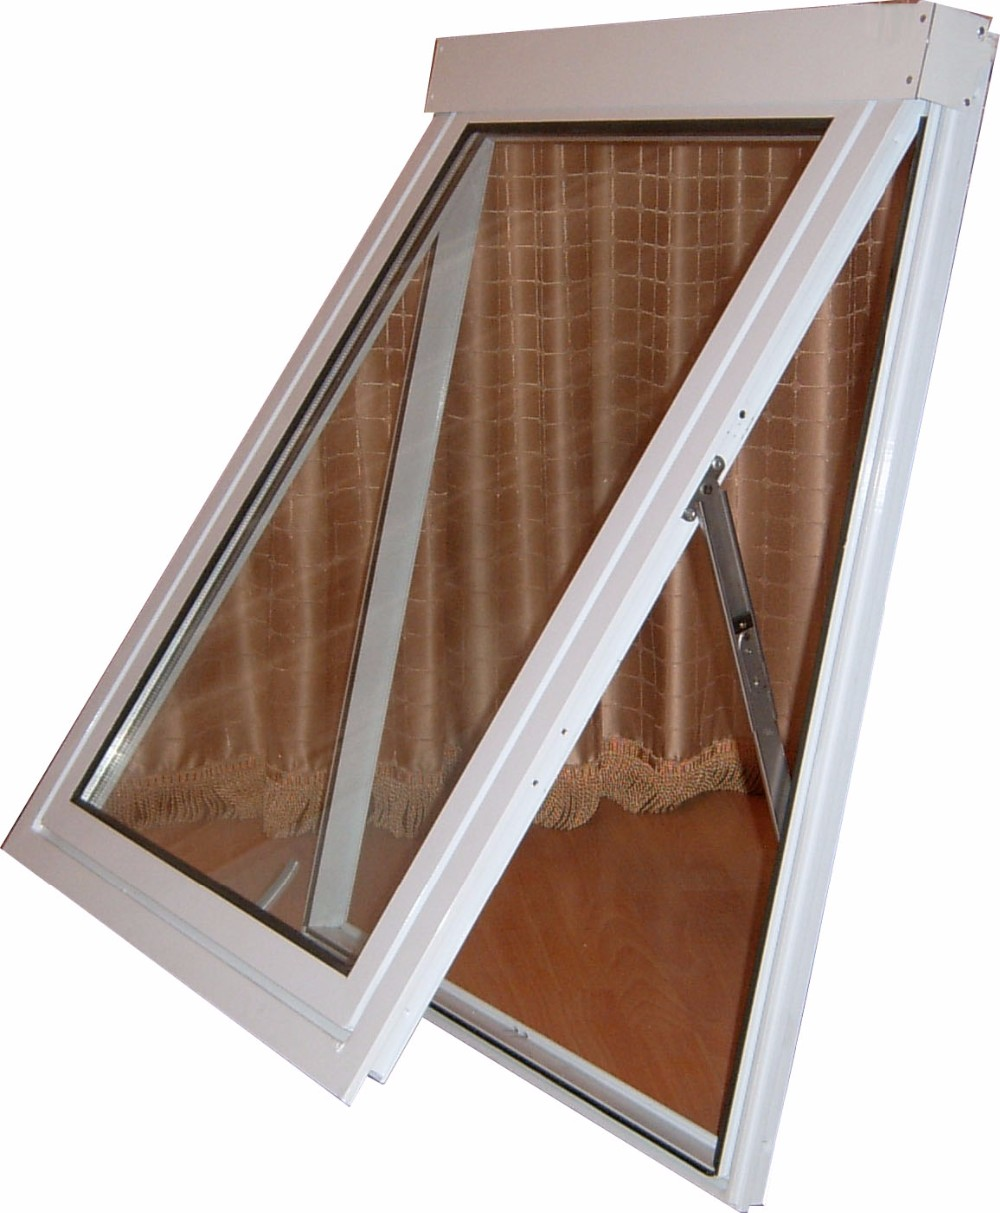 2016 indian window design aluminium top hung ventilation for 2016 window design